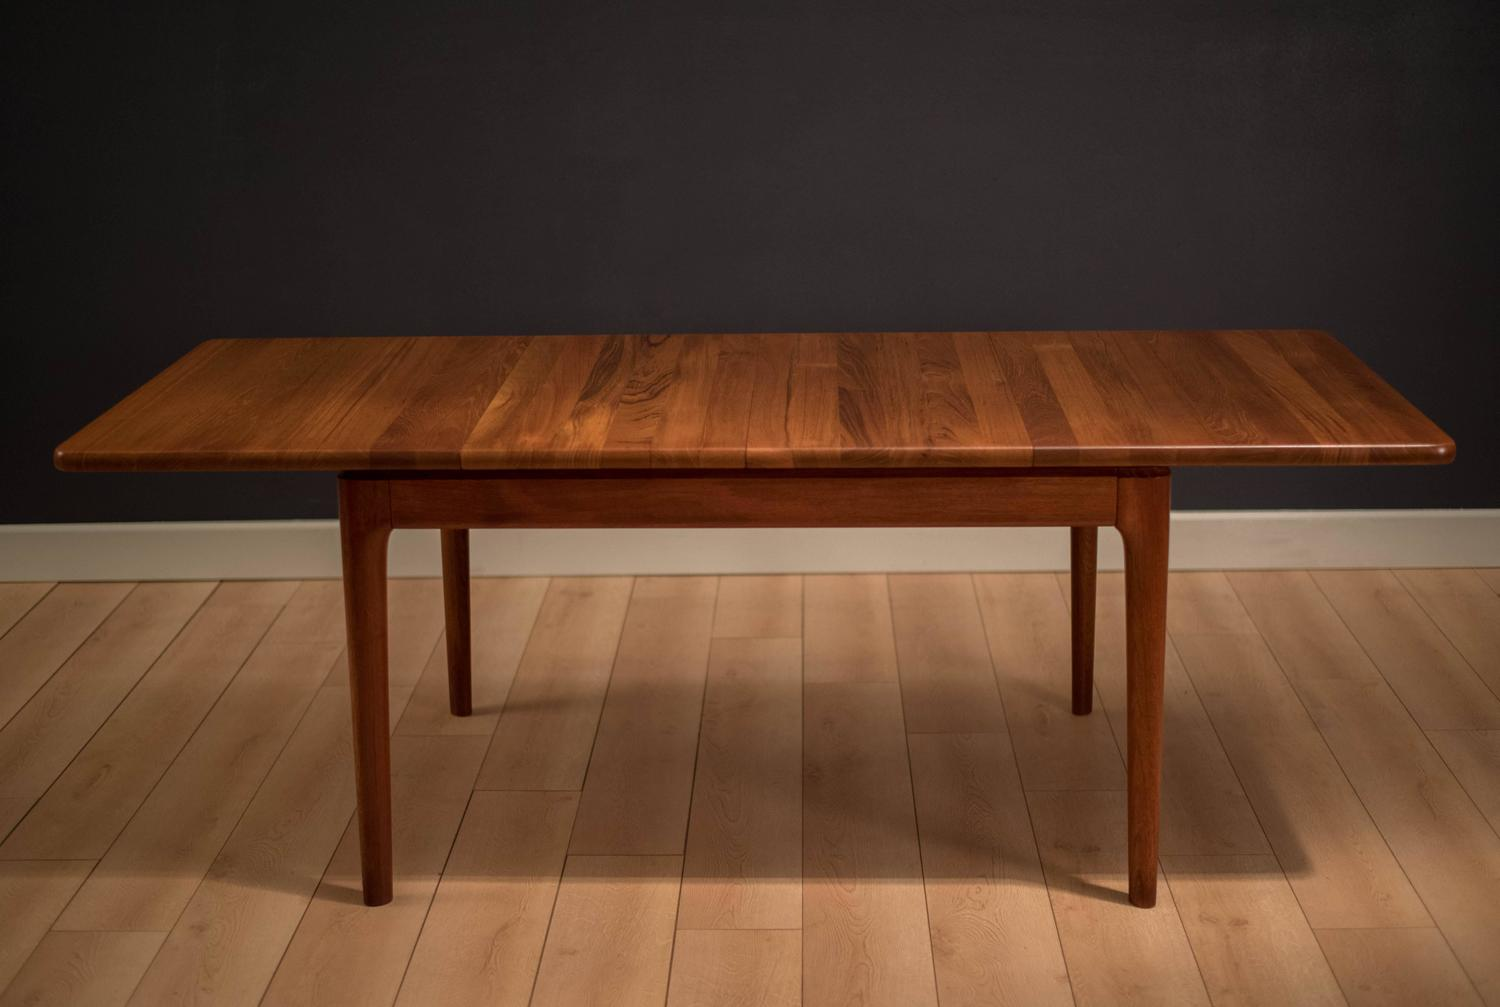 Mid Century Danish Solid Teak Dining Table at 1stdibs : soliddt6z from www.1stdibs.com size 1500 x 1007 jpeg 77kB